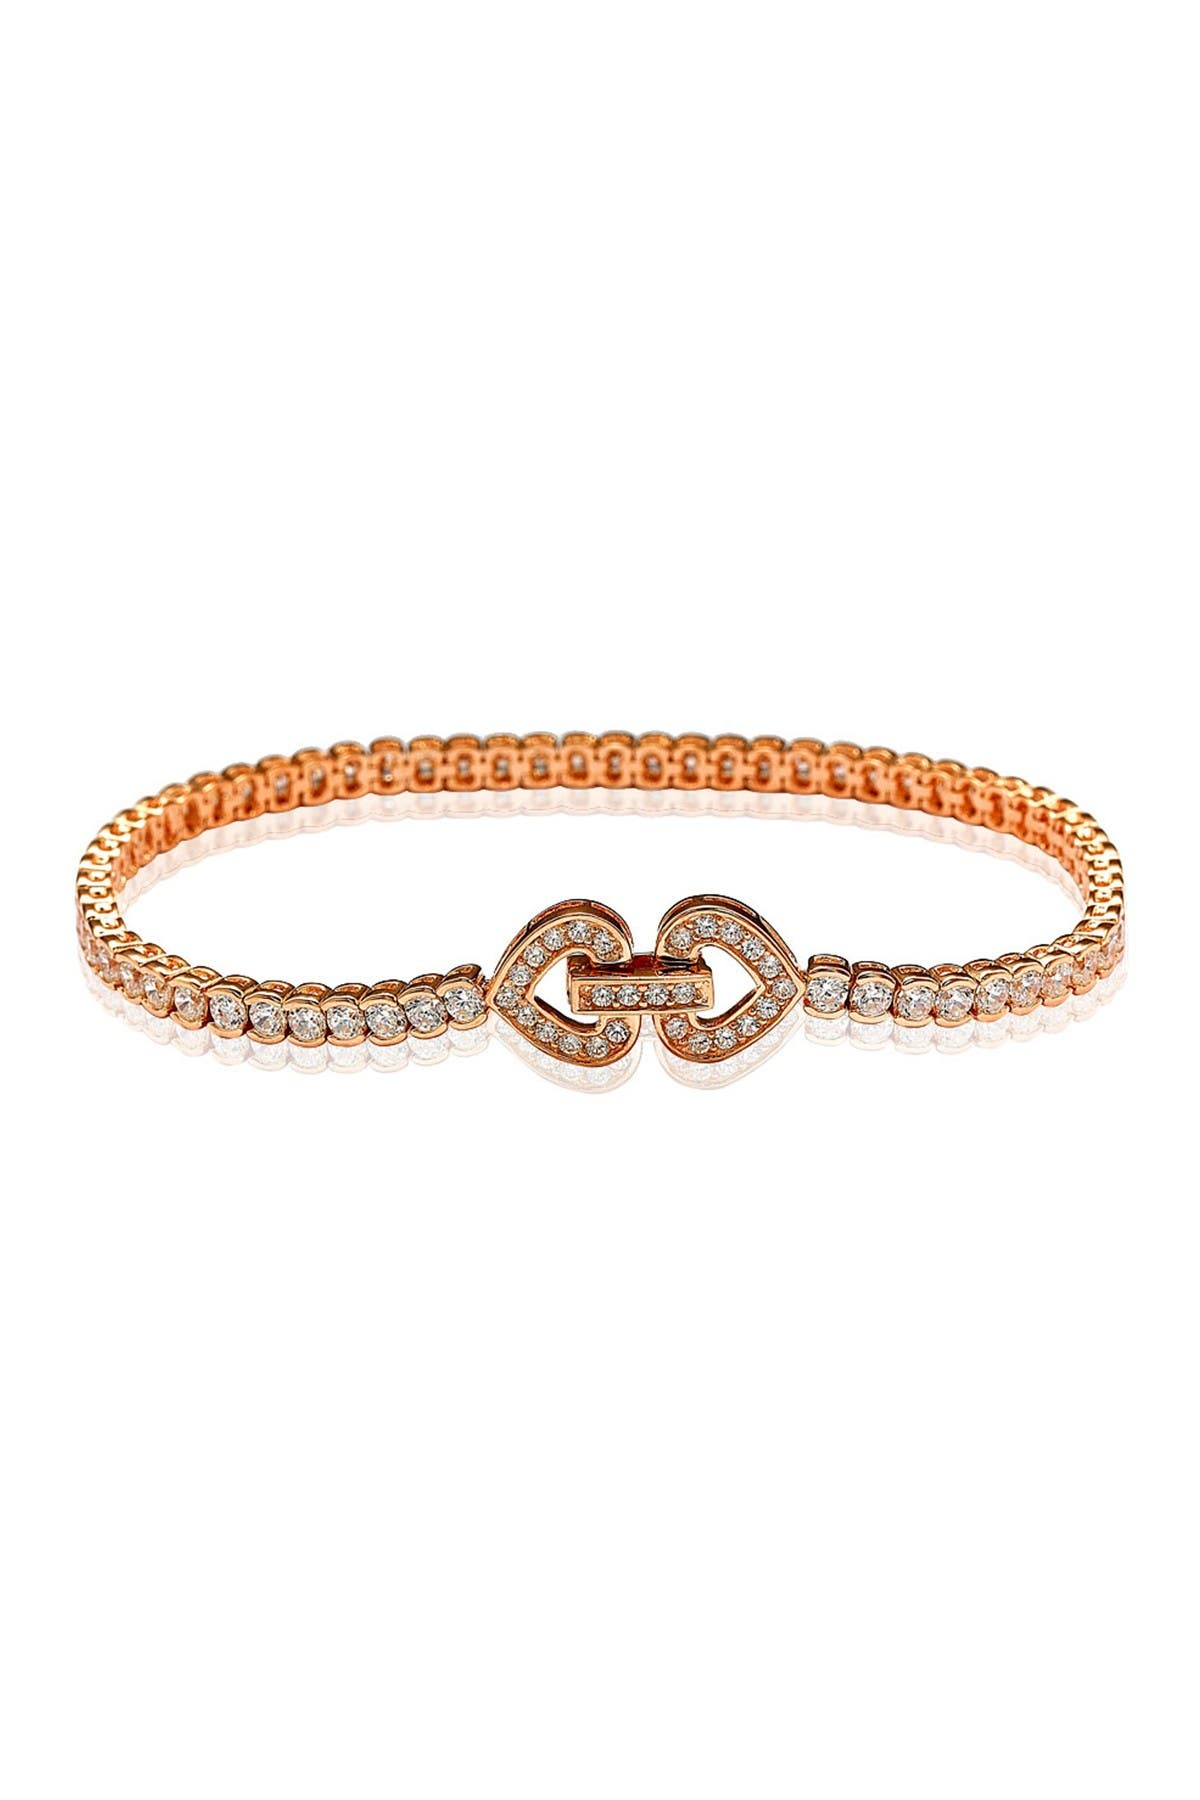 Image of Suzy Levian Rose Gold Plated Sterling Silver Pave CZ Bracelet